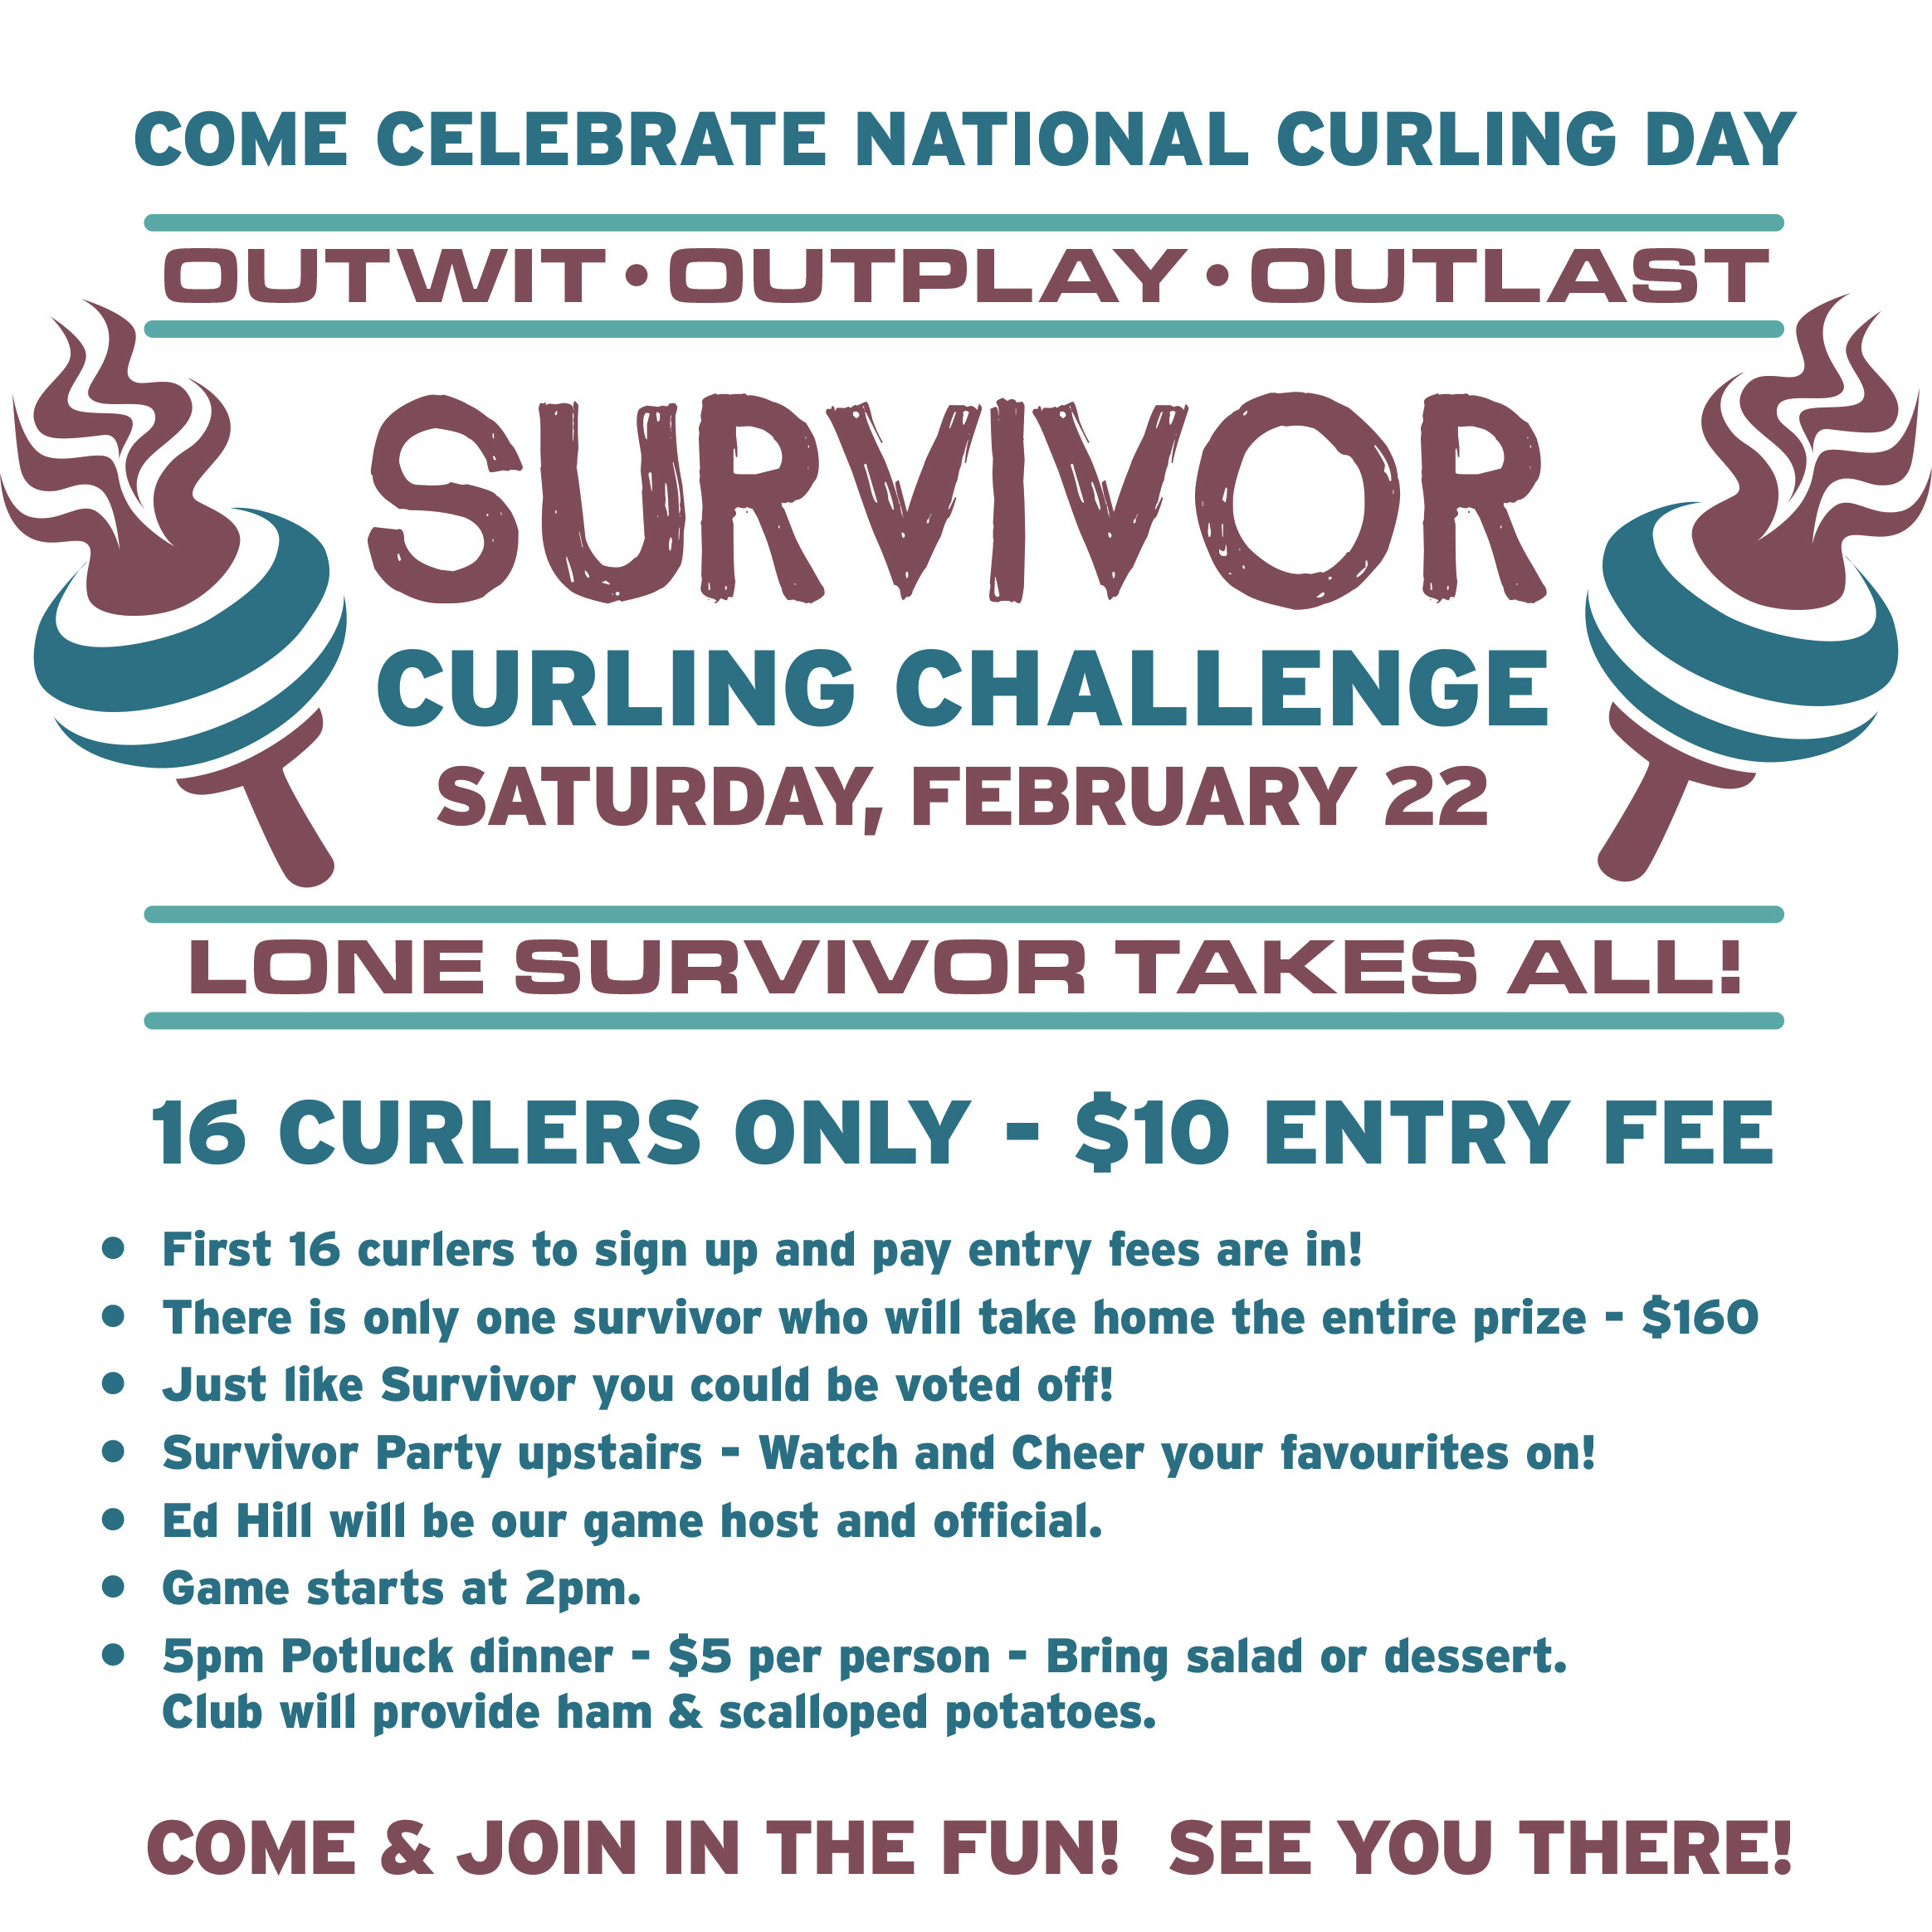 Celebrate National Curling Day with Us (Feb. 22)